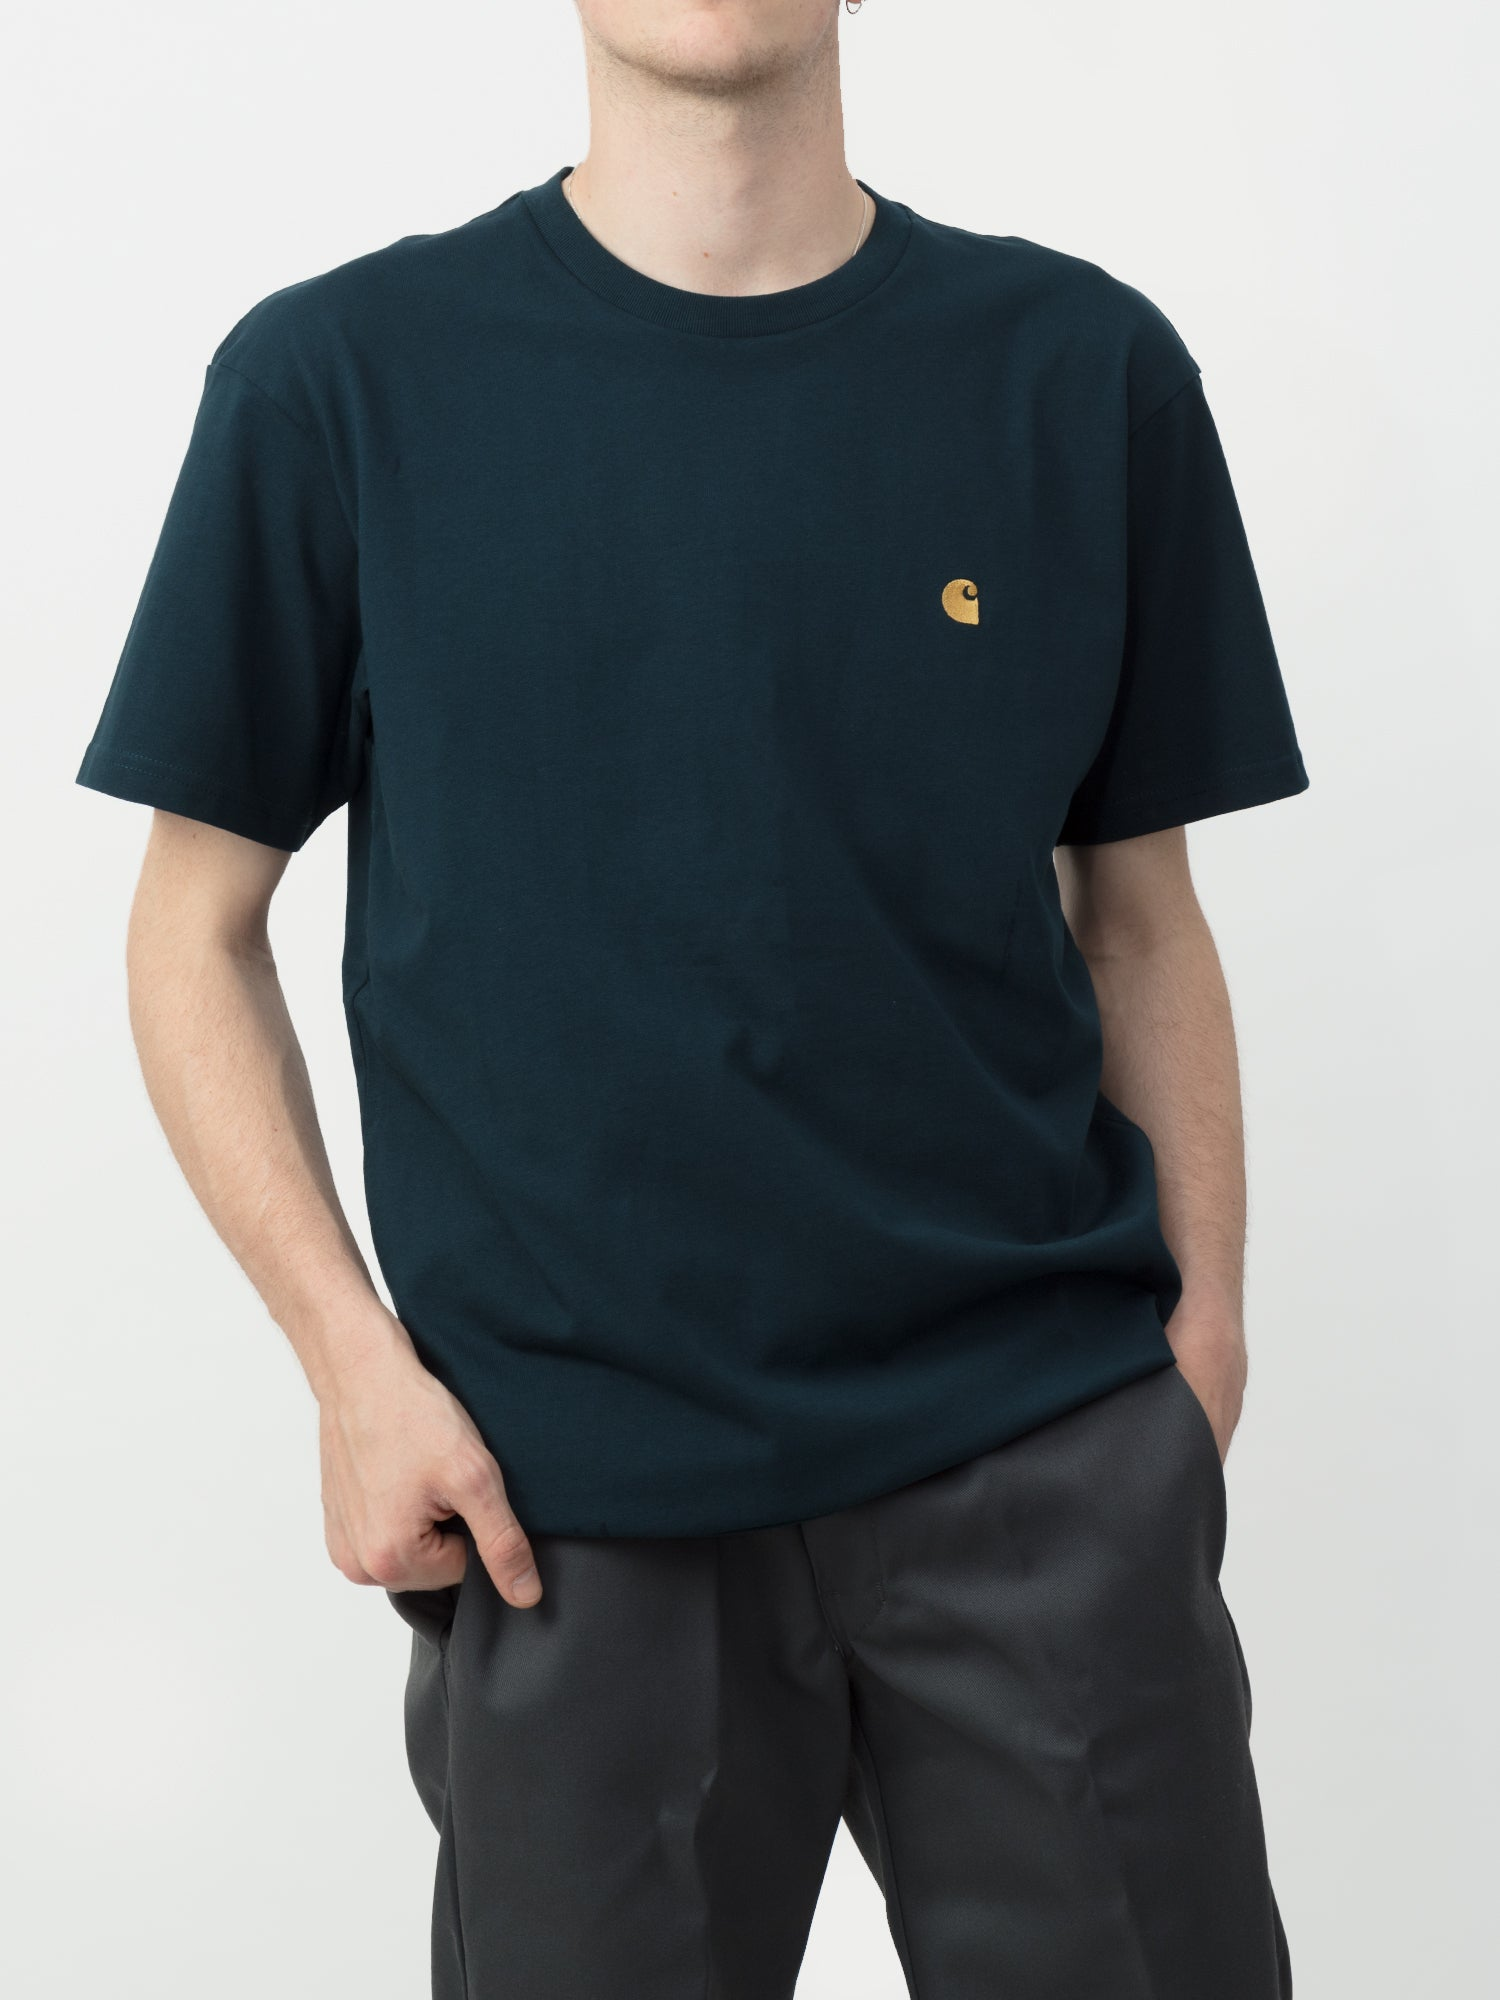 Carhartt S/S Chase T-Shirt (Duck Blue & Gold) 1